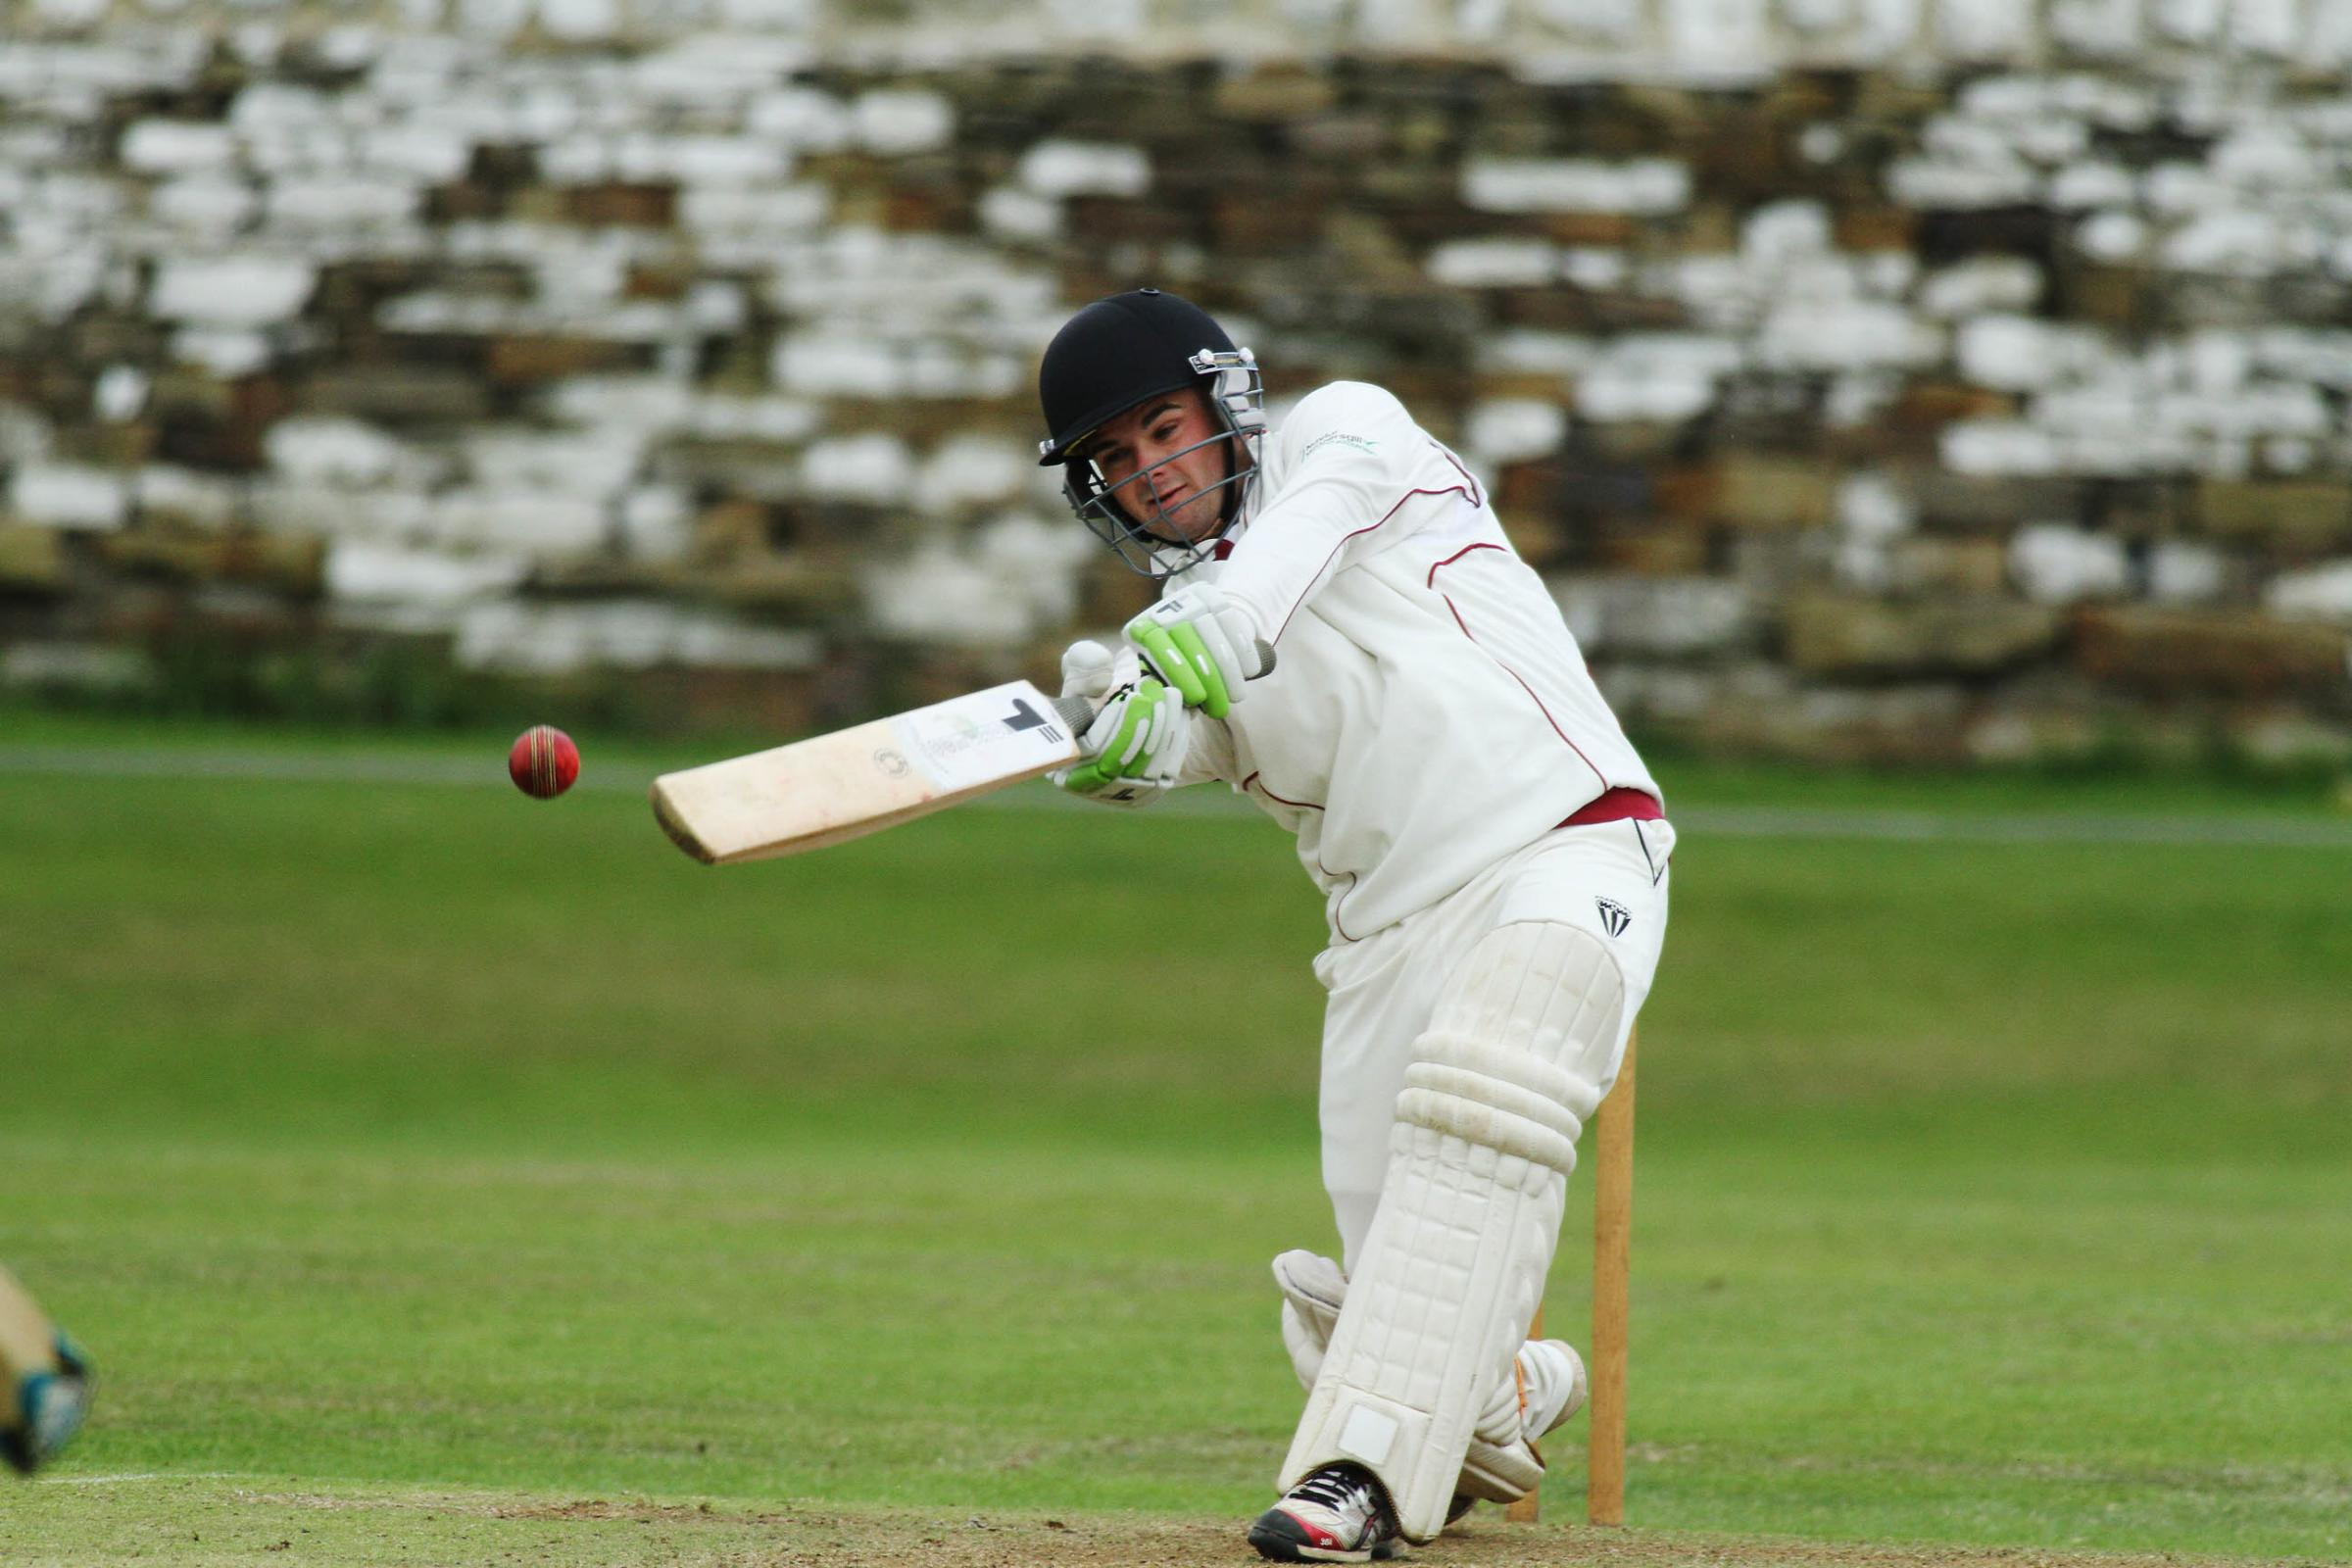 Ben Burkill of Cullingworth won two batting prizes at the Spenser Wilson League's annual prize presentation